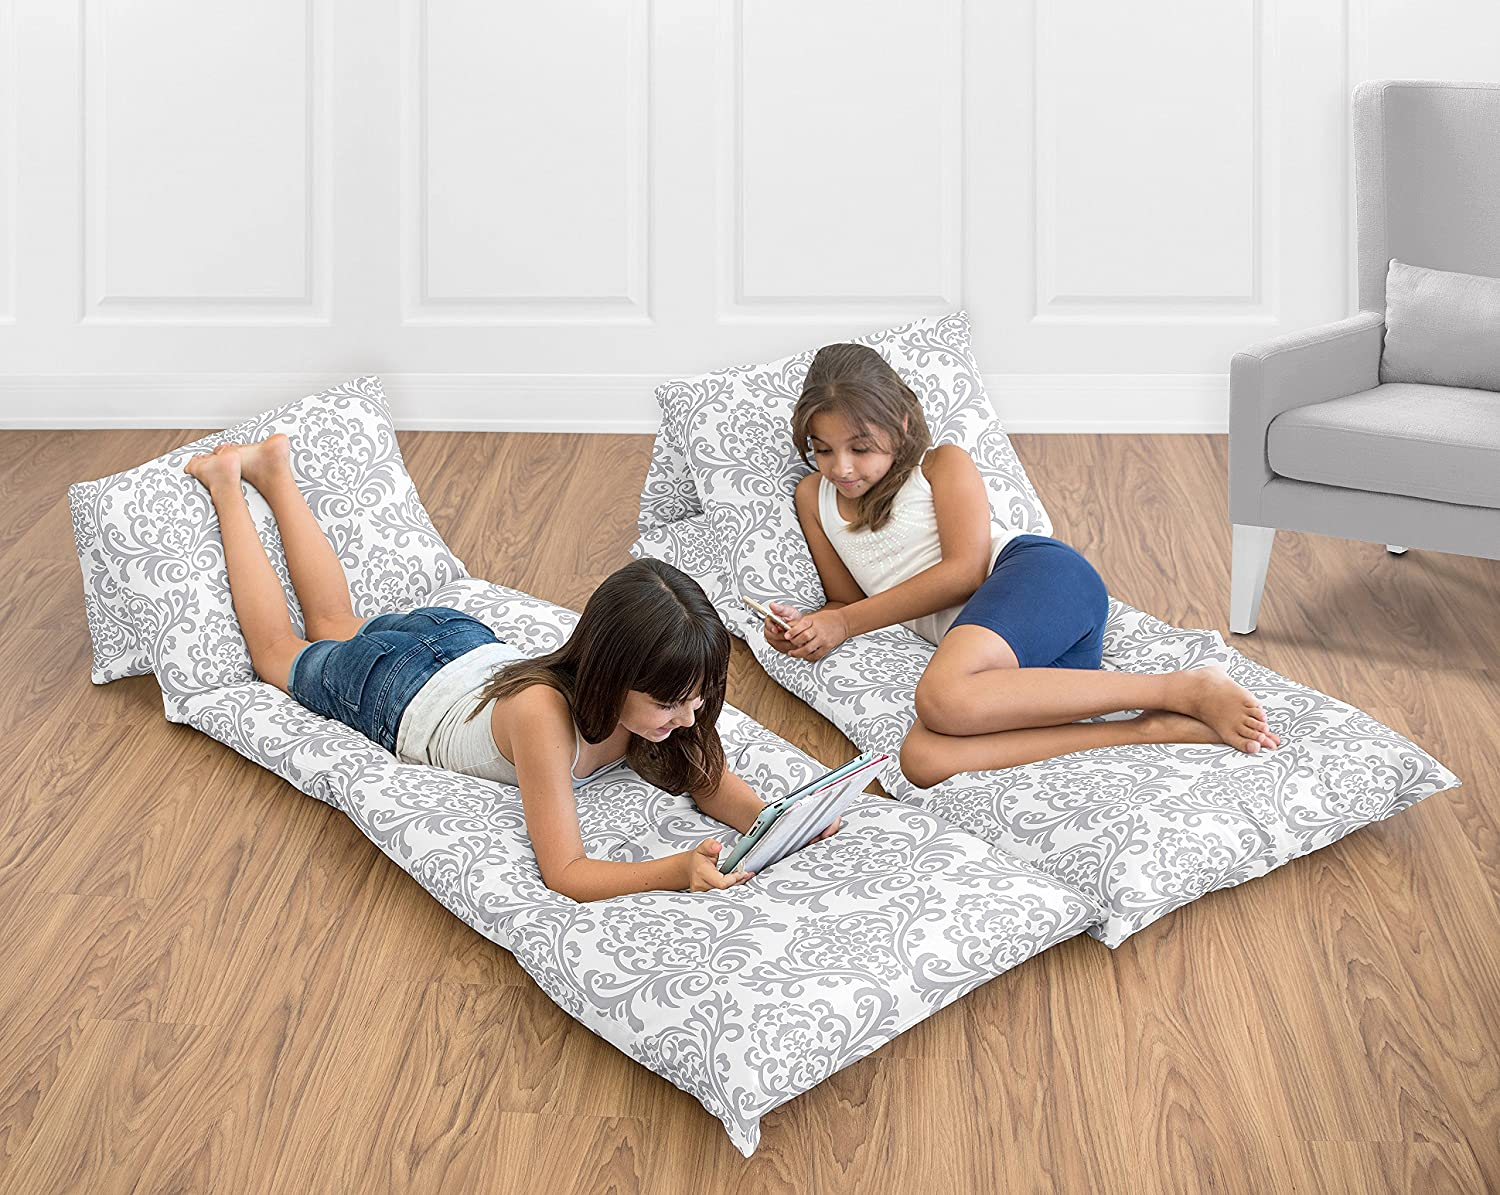 Sweet Jojo Designs Gray And White Damask Kids Teen Floor Pillow Case Lounger Cushion Cover Pillows Not Included Baby